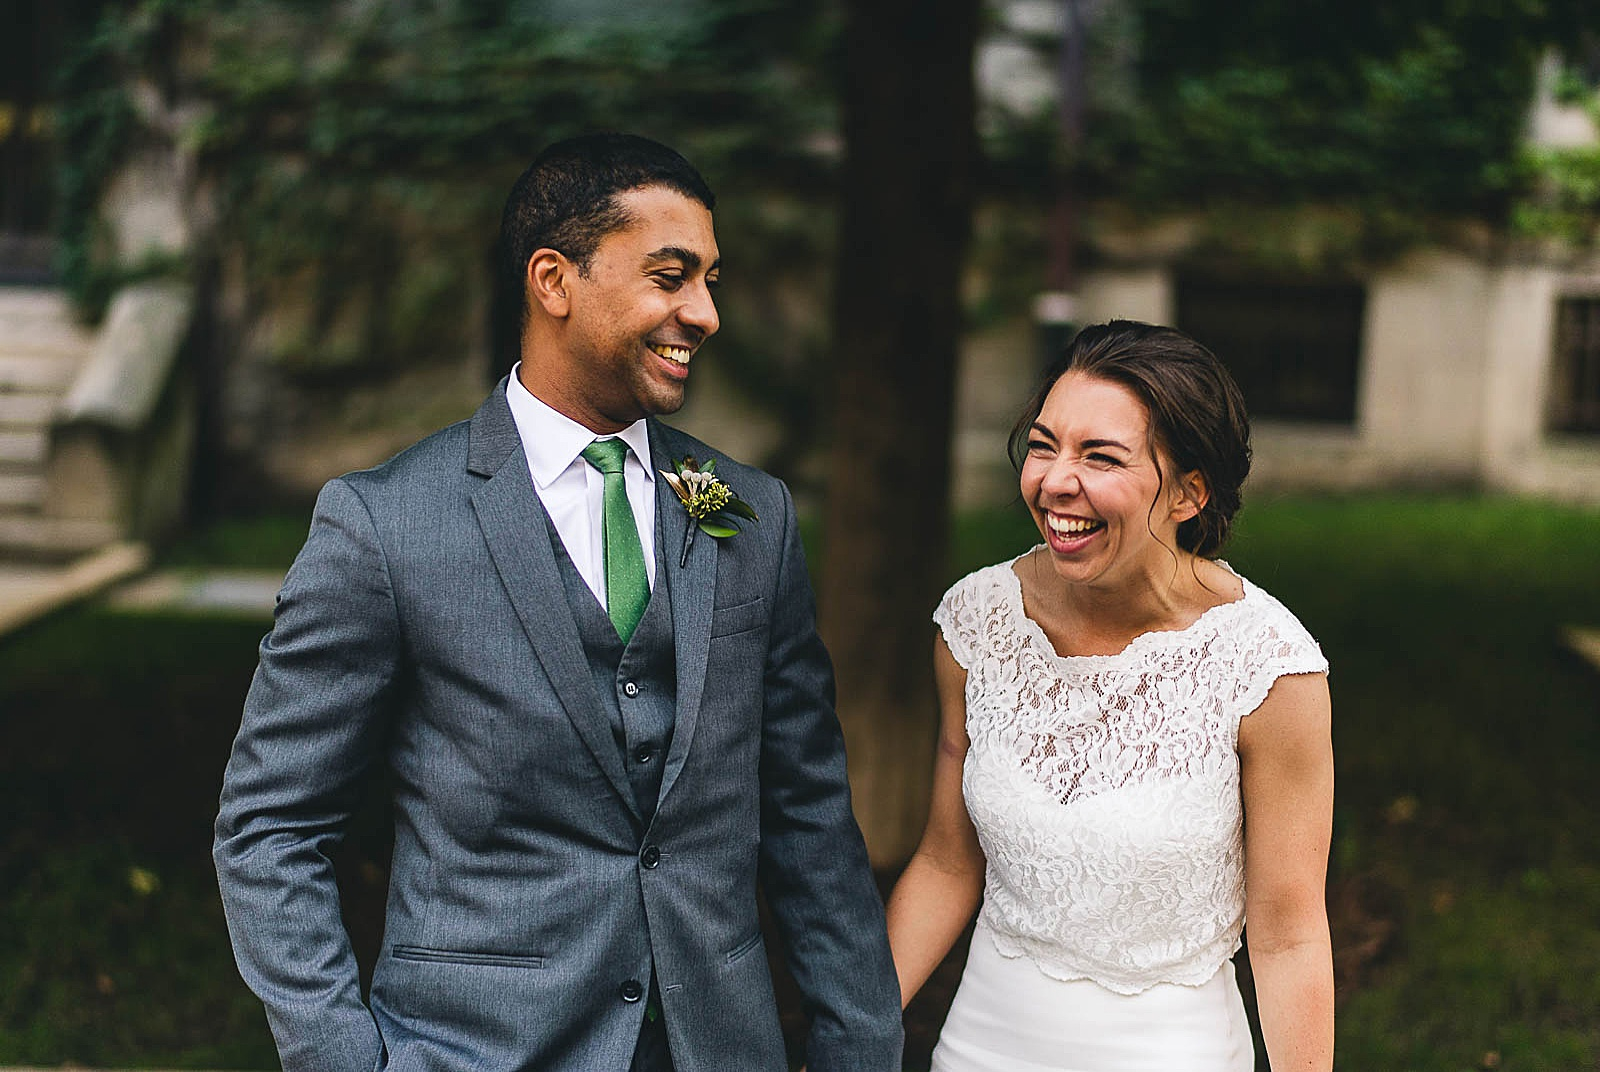 20 laughing wedding photos - Wedding at Bridgeport Art Center // Kylie + Sean